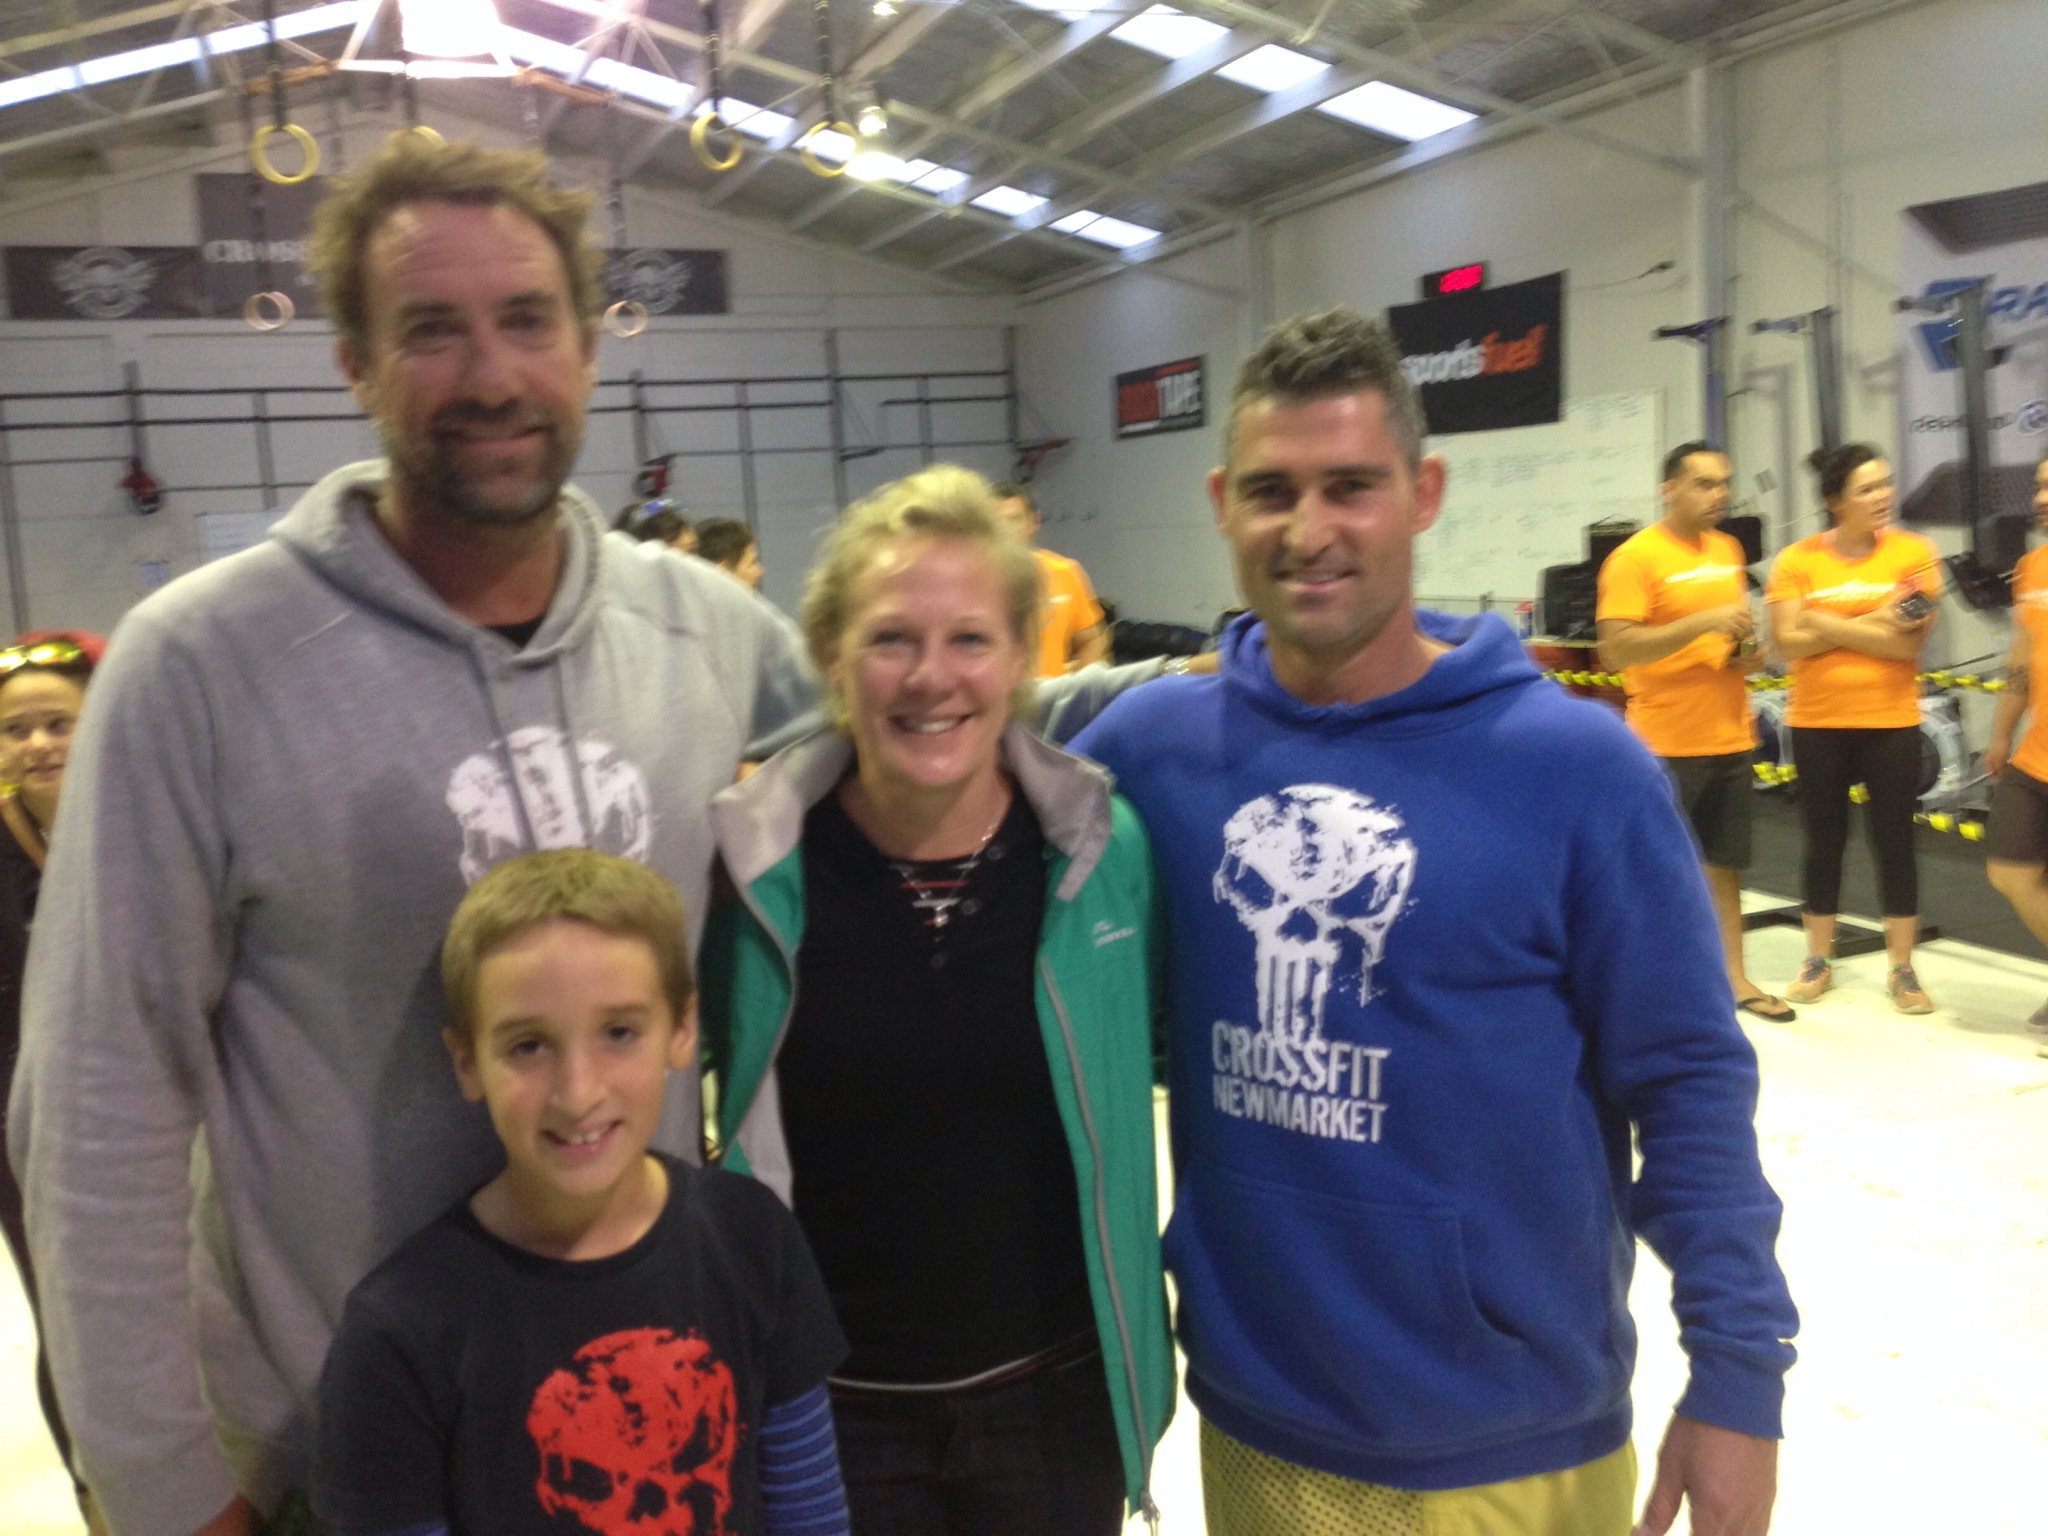 Bucket, Suzie and myself are real proud to take the podium and win our respective divisions at the NZ CF Masters on Saturday. Perty and Adam also performed really well in the very tough Mens 40+ RXD division, but a big thanks to Carl and the crew out at CF Dynamite Onehunga for a well run comp. :-)